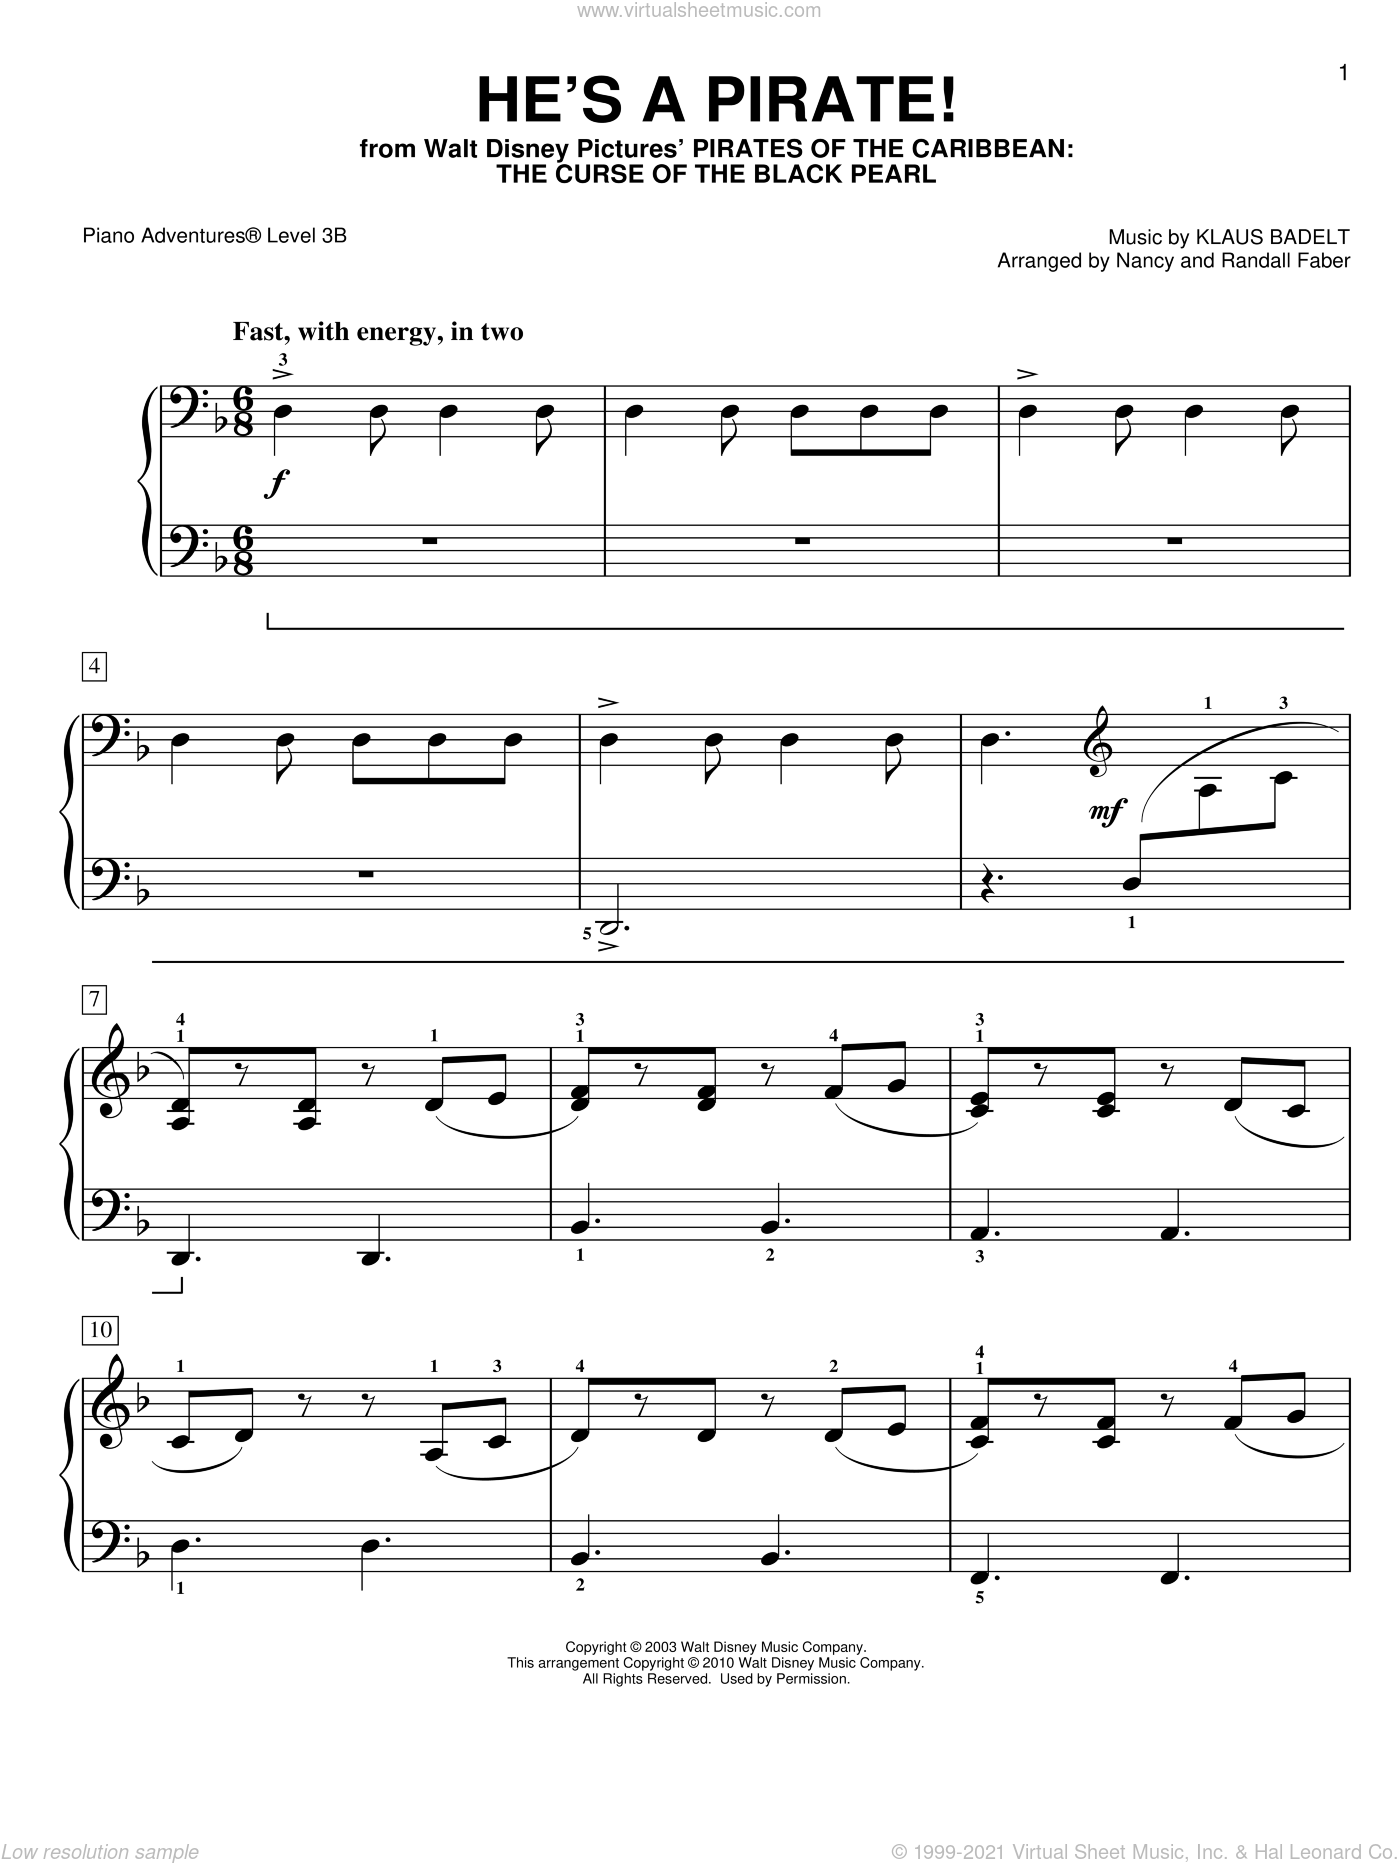 He's a Pirate sheet music for piano solo by Klaus Badelt and Nancy and Randall Faber, intermediate/advanced skill level